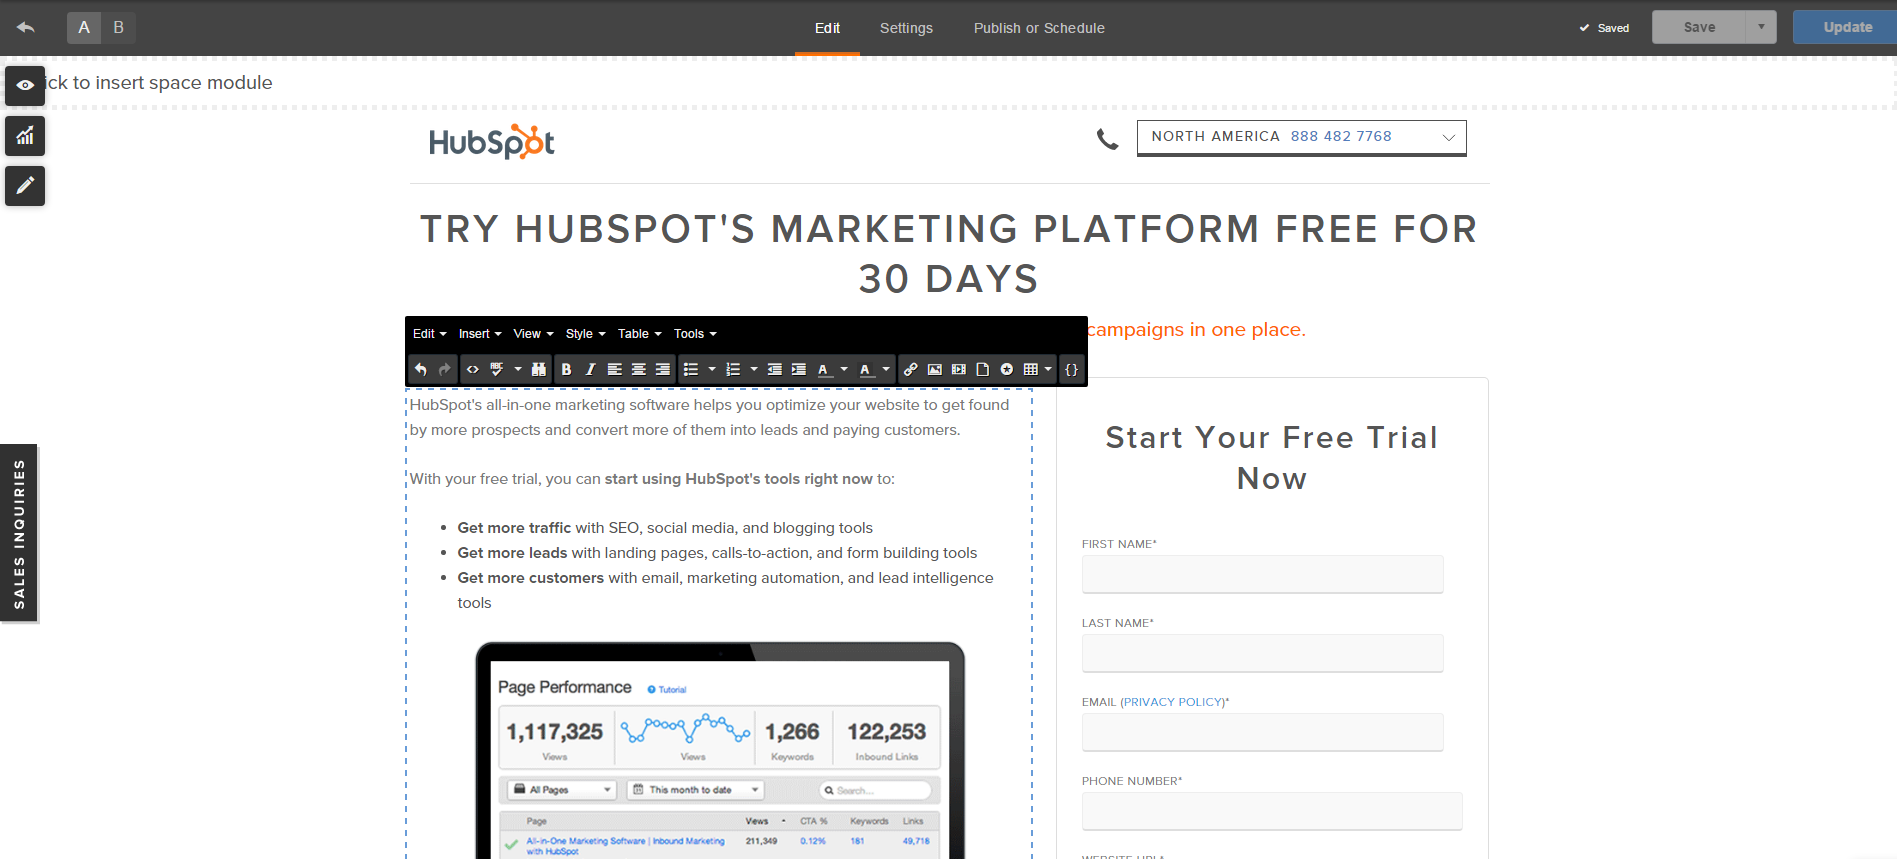 Website and Landing Page content editor via hubspot.png